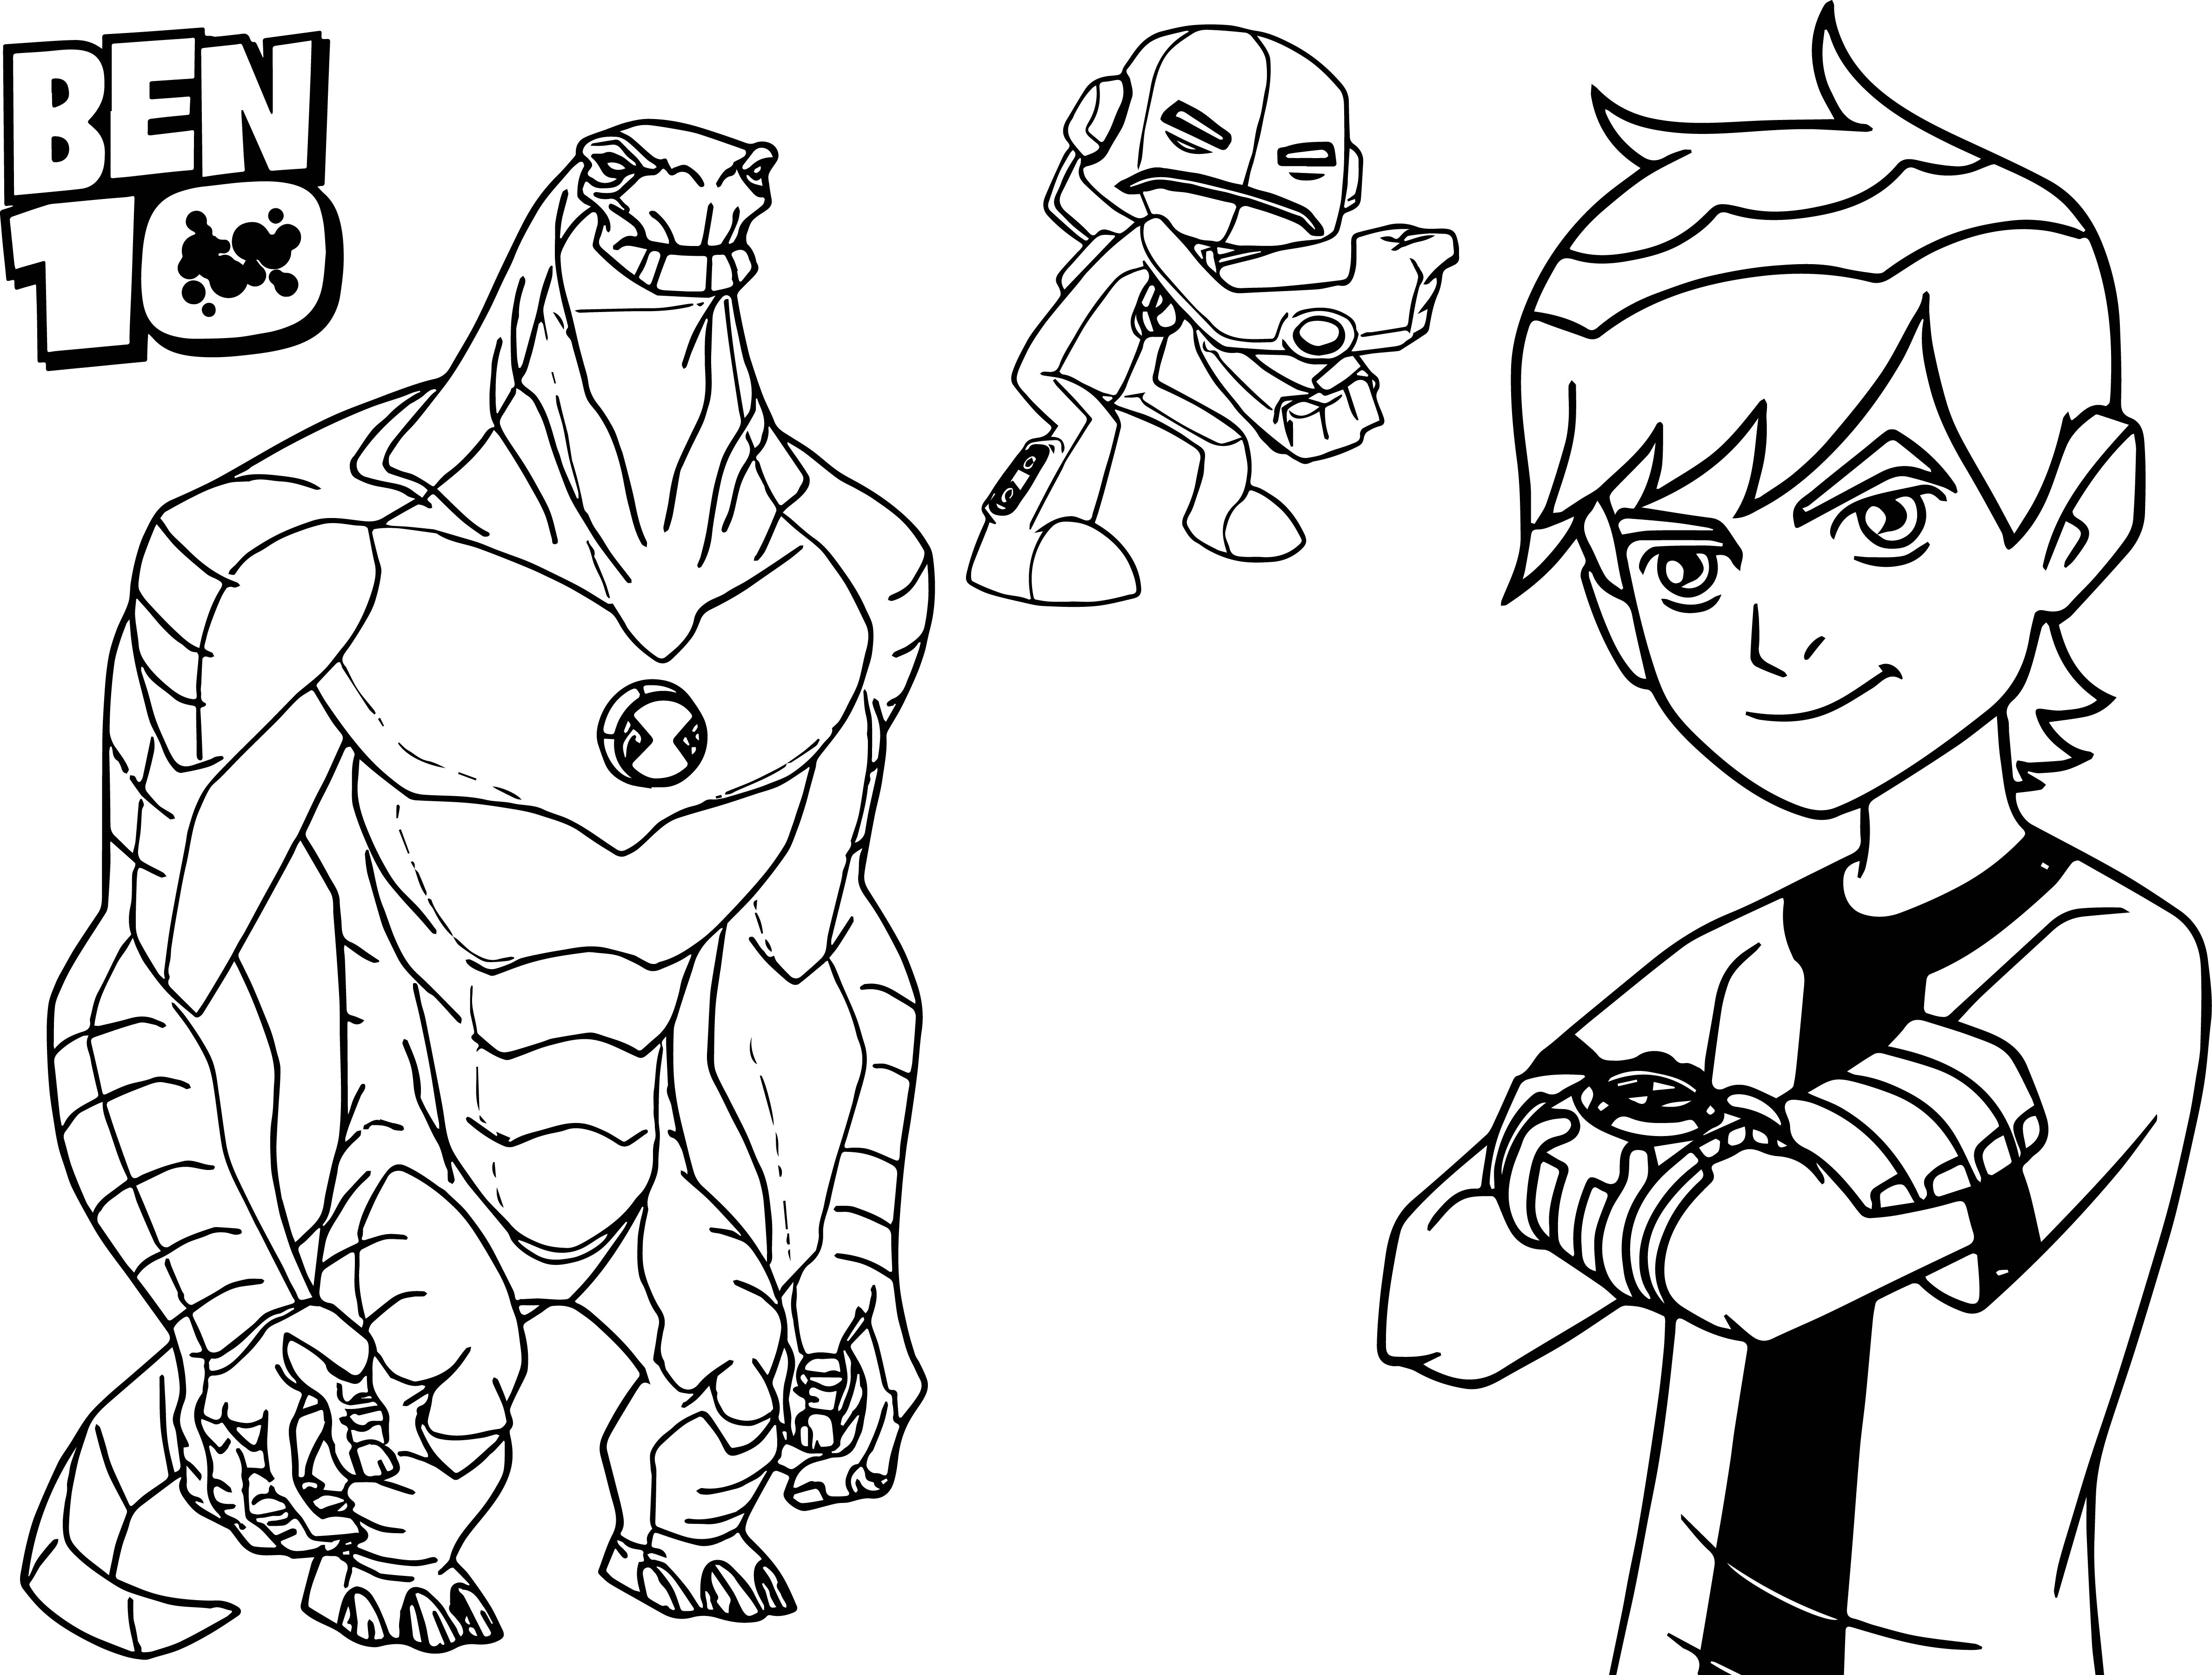 ben 10 coloring pictures cartoon network ben 10 coloring pages xlr8 free printable 10 pictures coloring ben